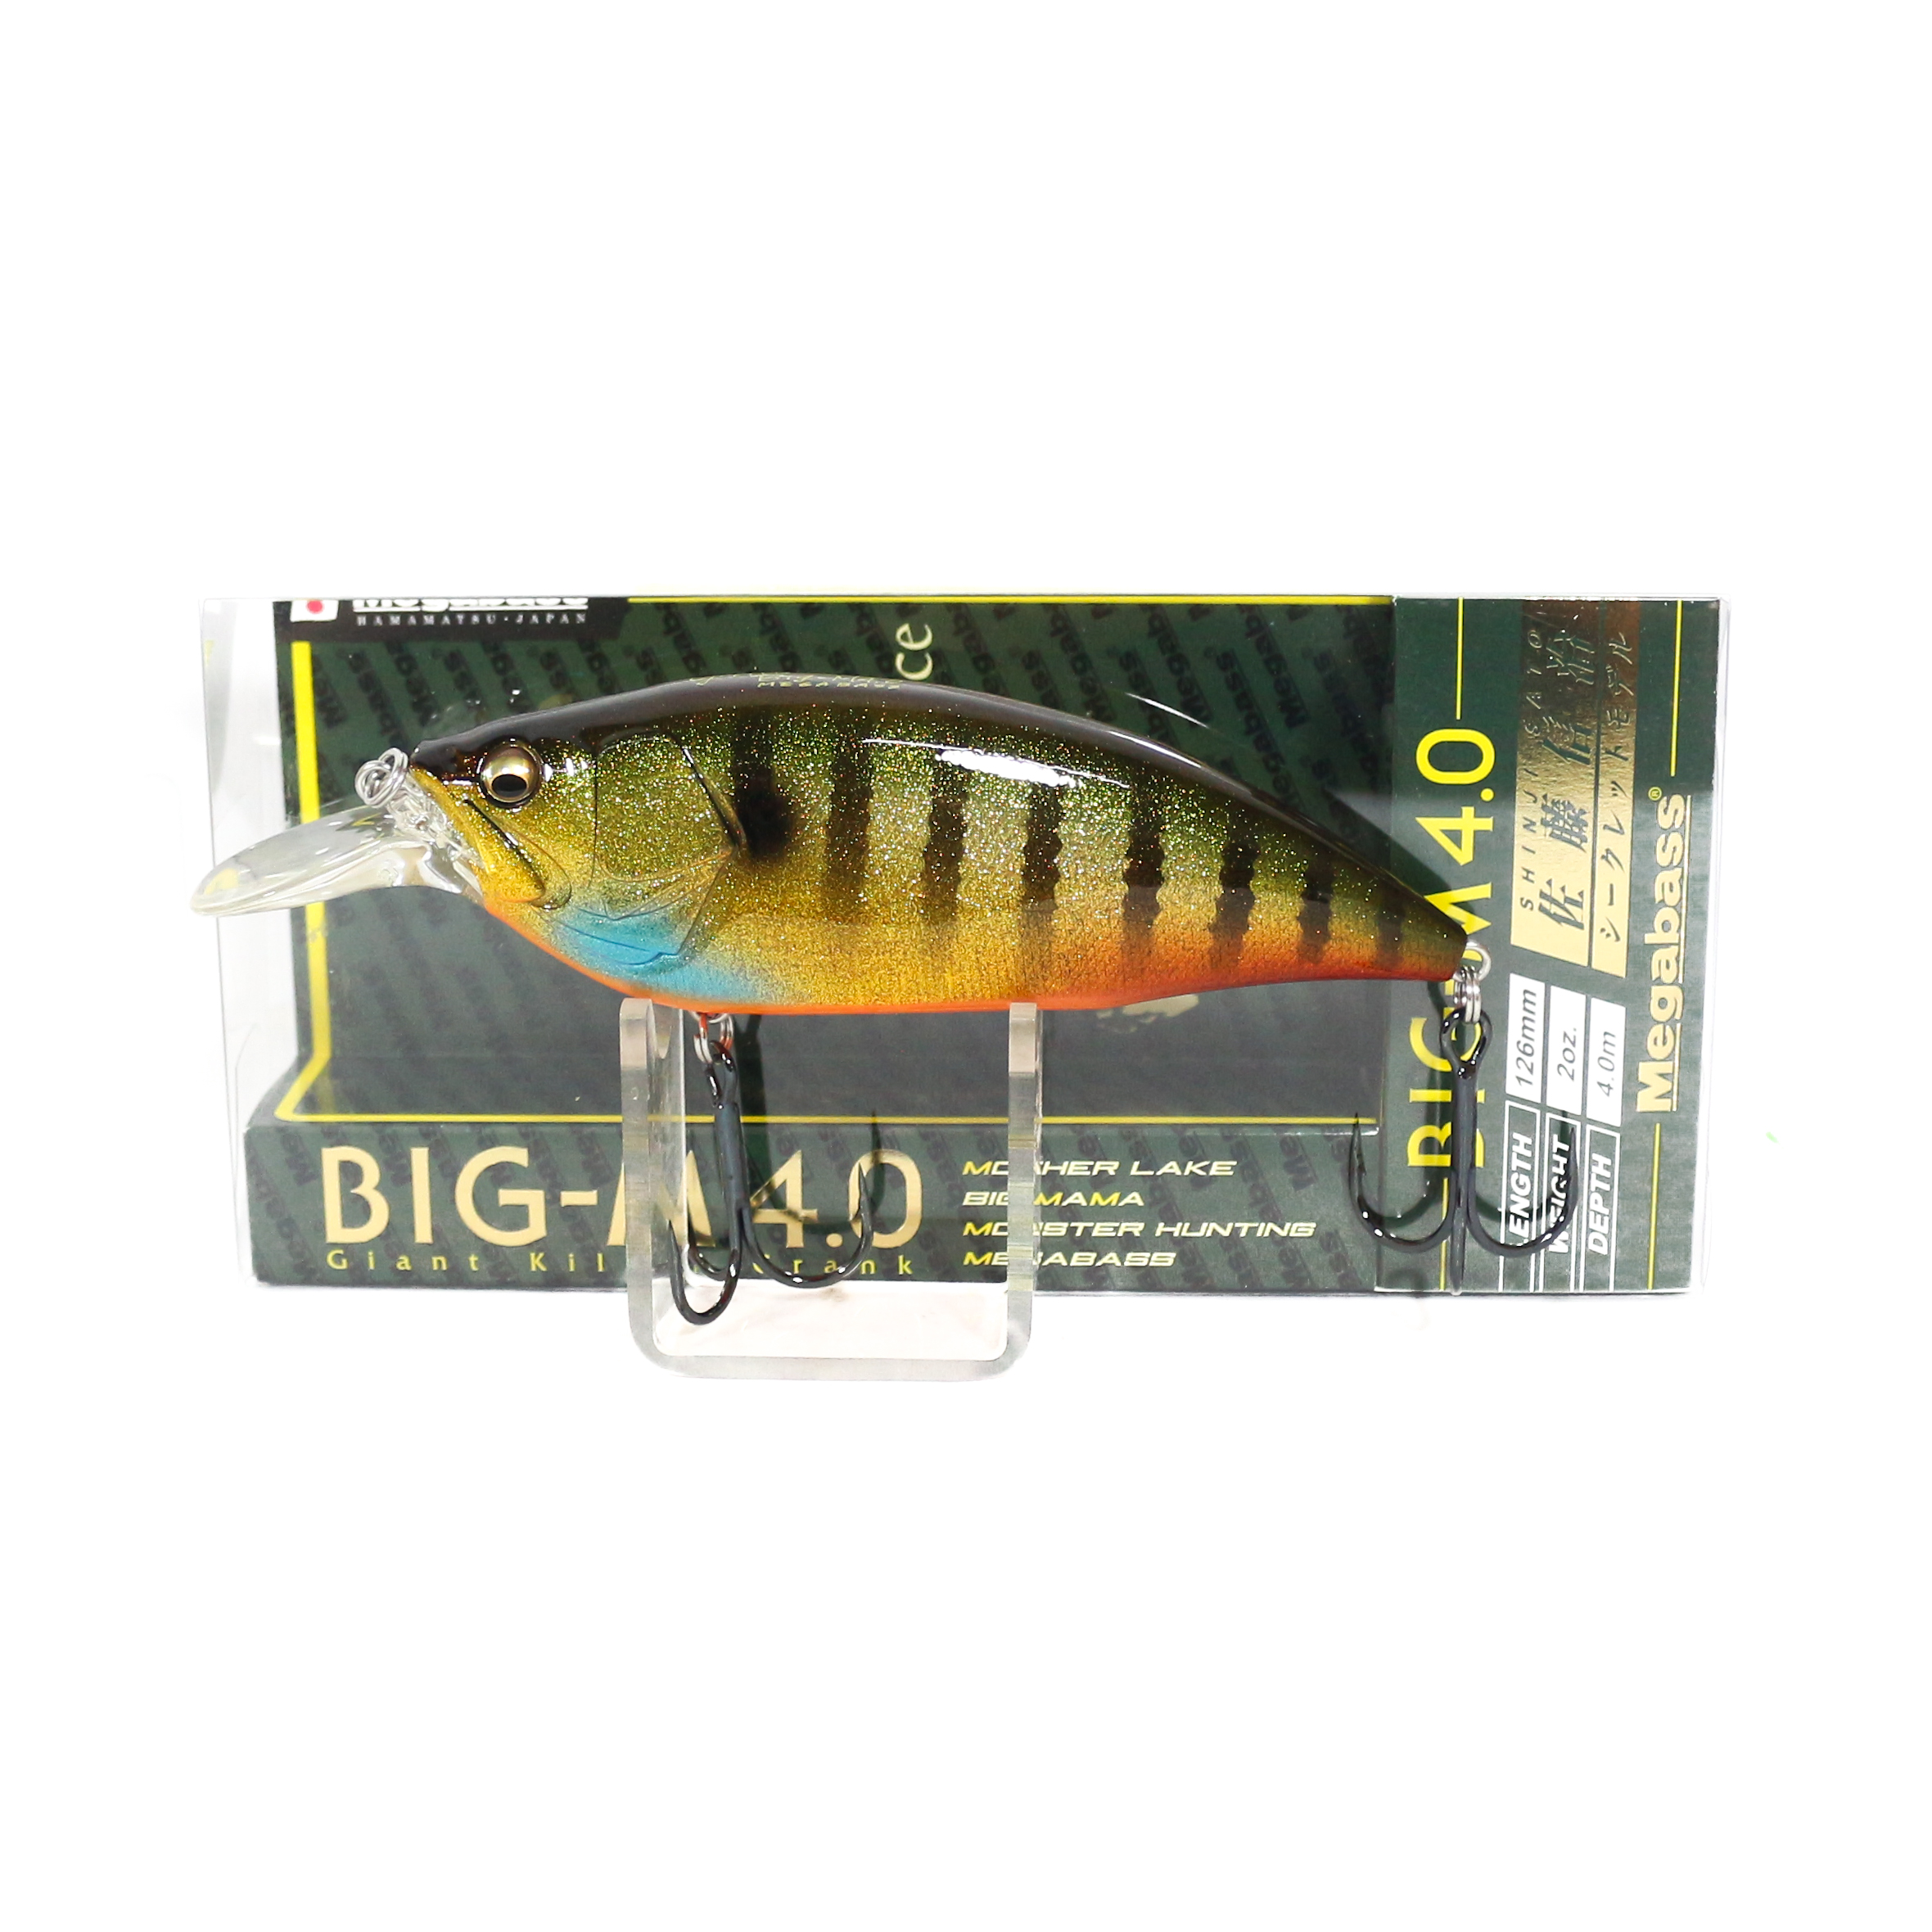 Megabass Big M 4.0 Giant Crank 126 mm Floating Lure GLX ITO Gill (3242)